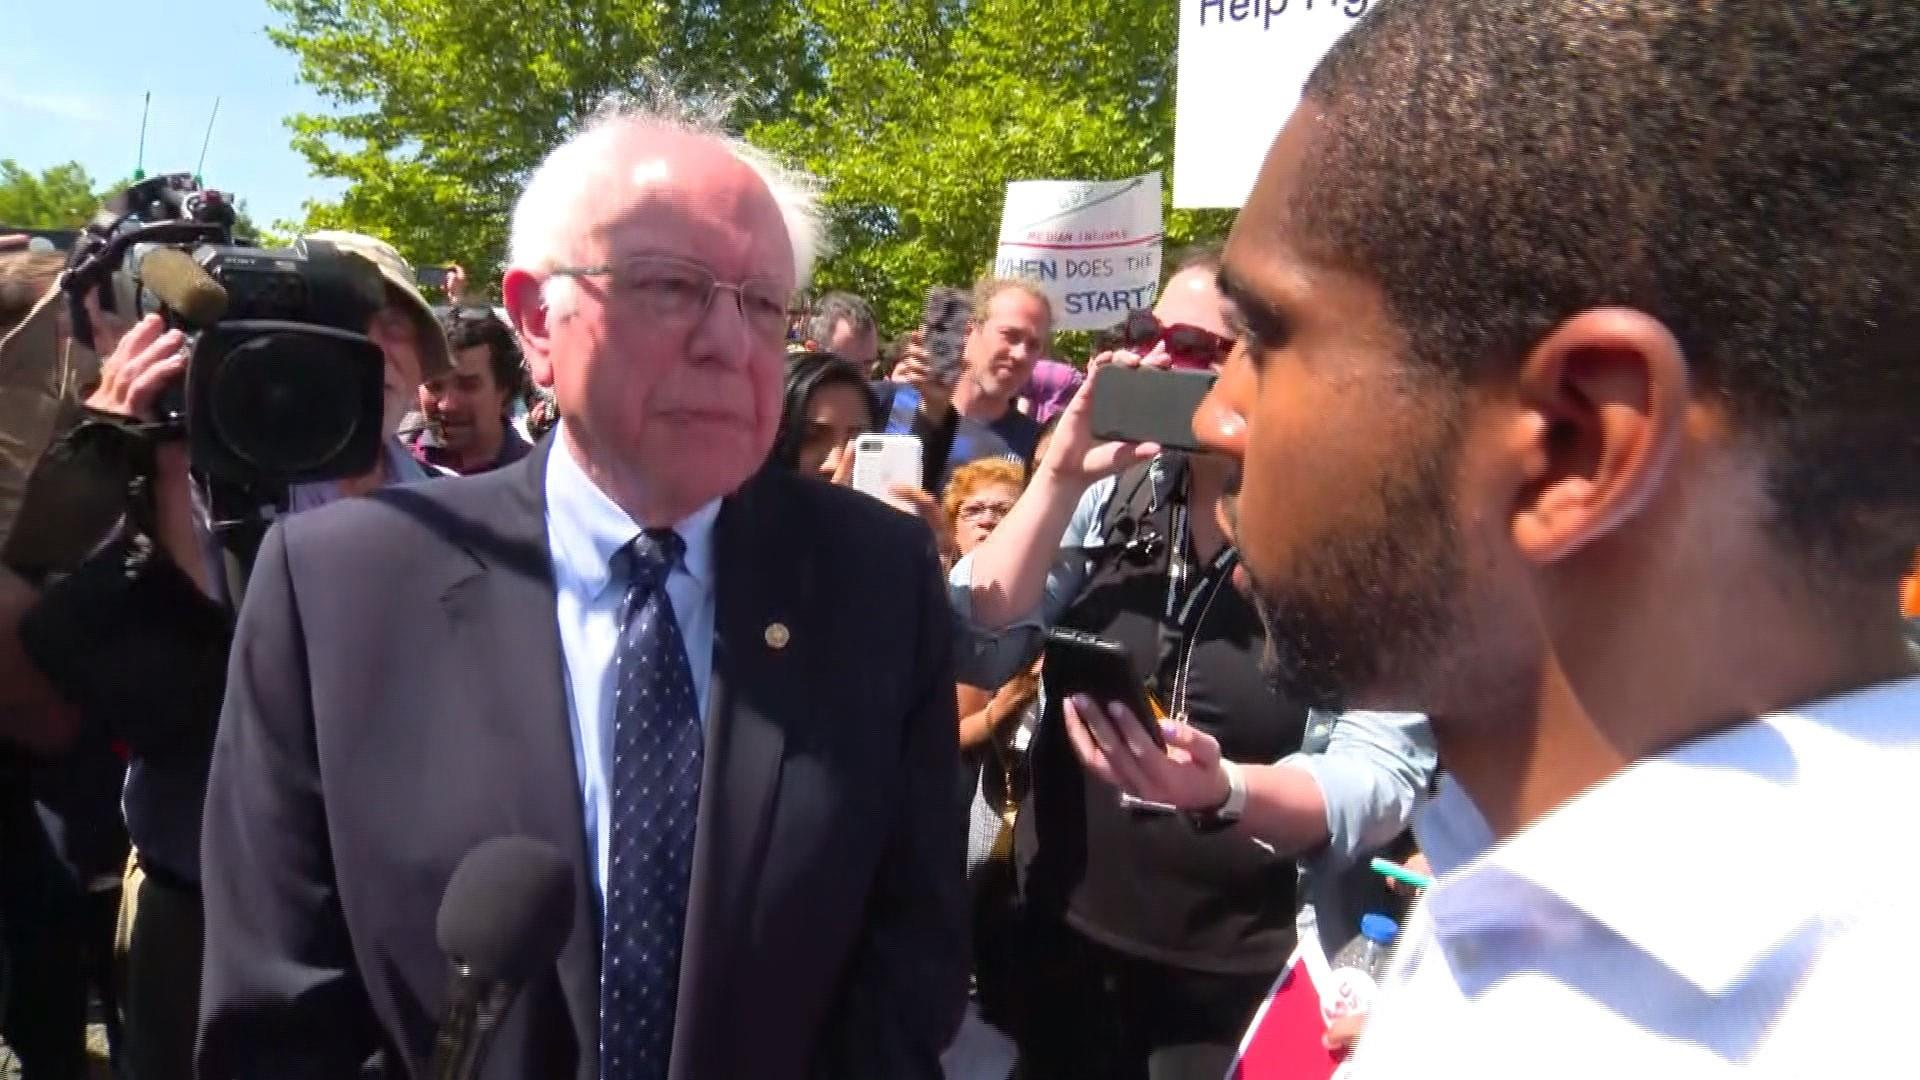 Bernie Sanders calls on Walmart to pay living wage of $15 an hour